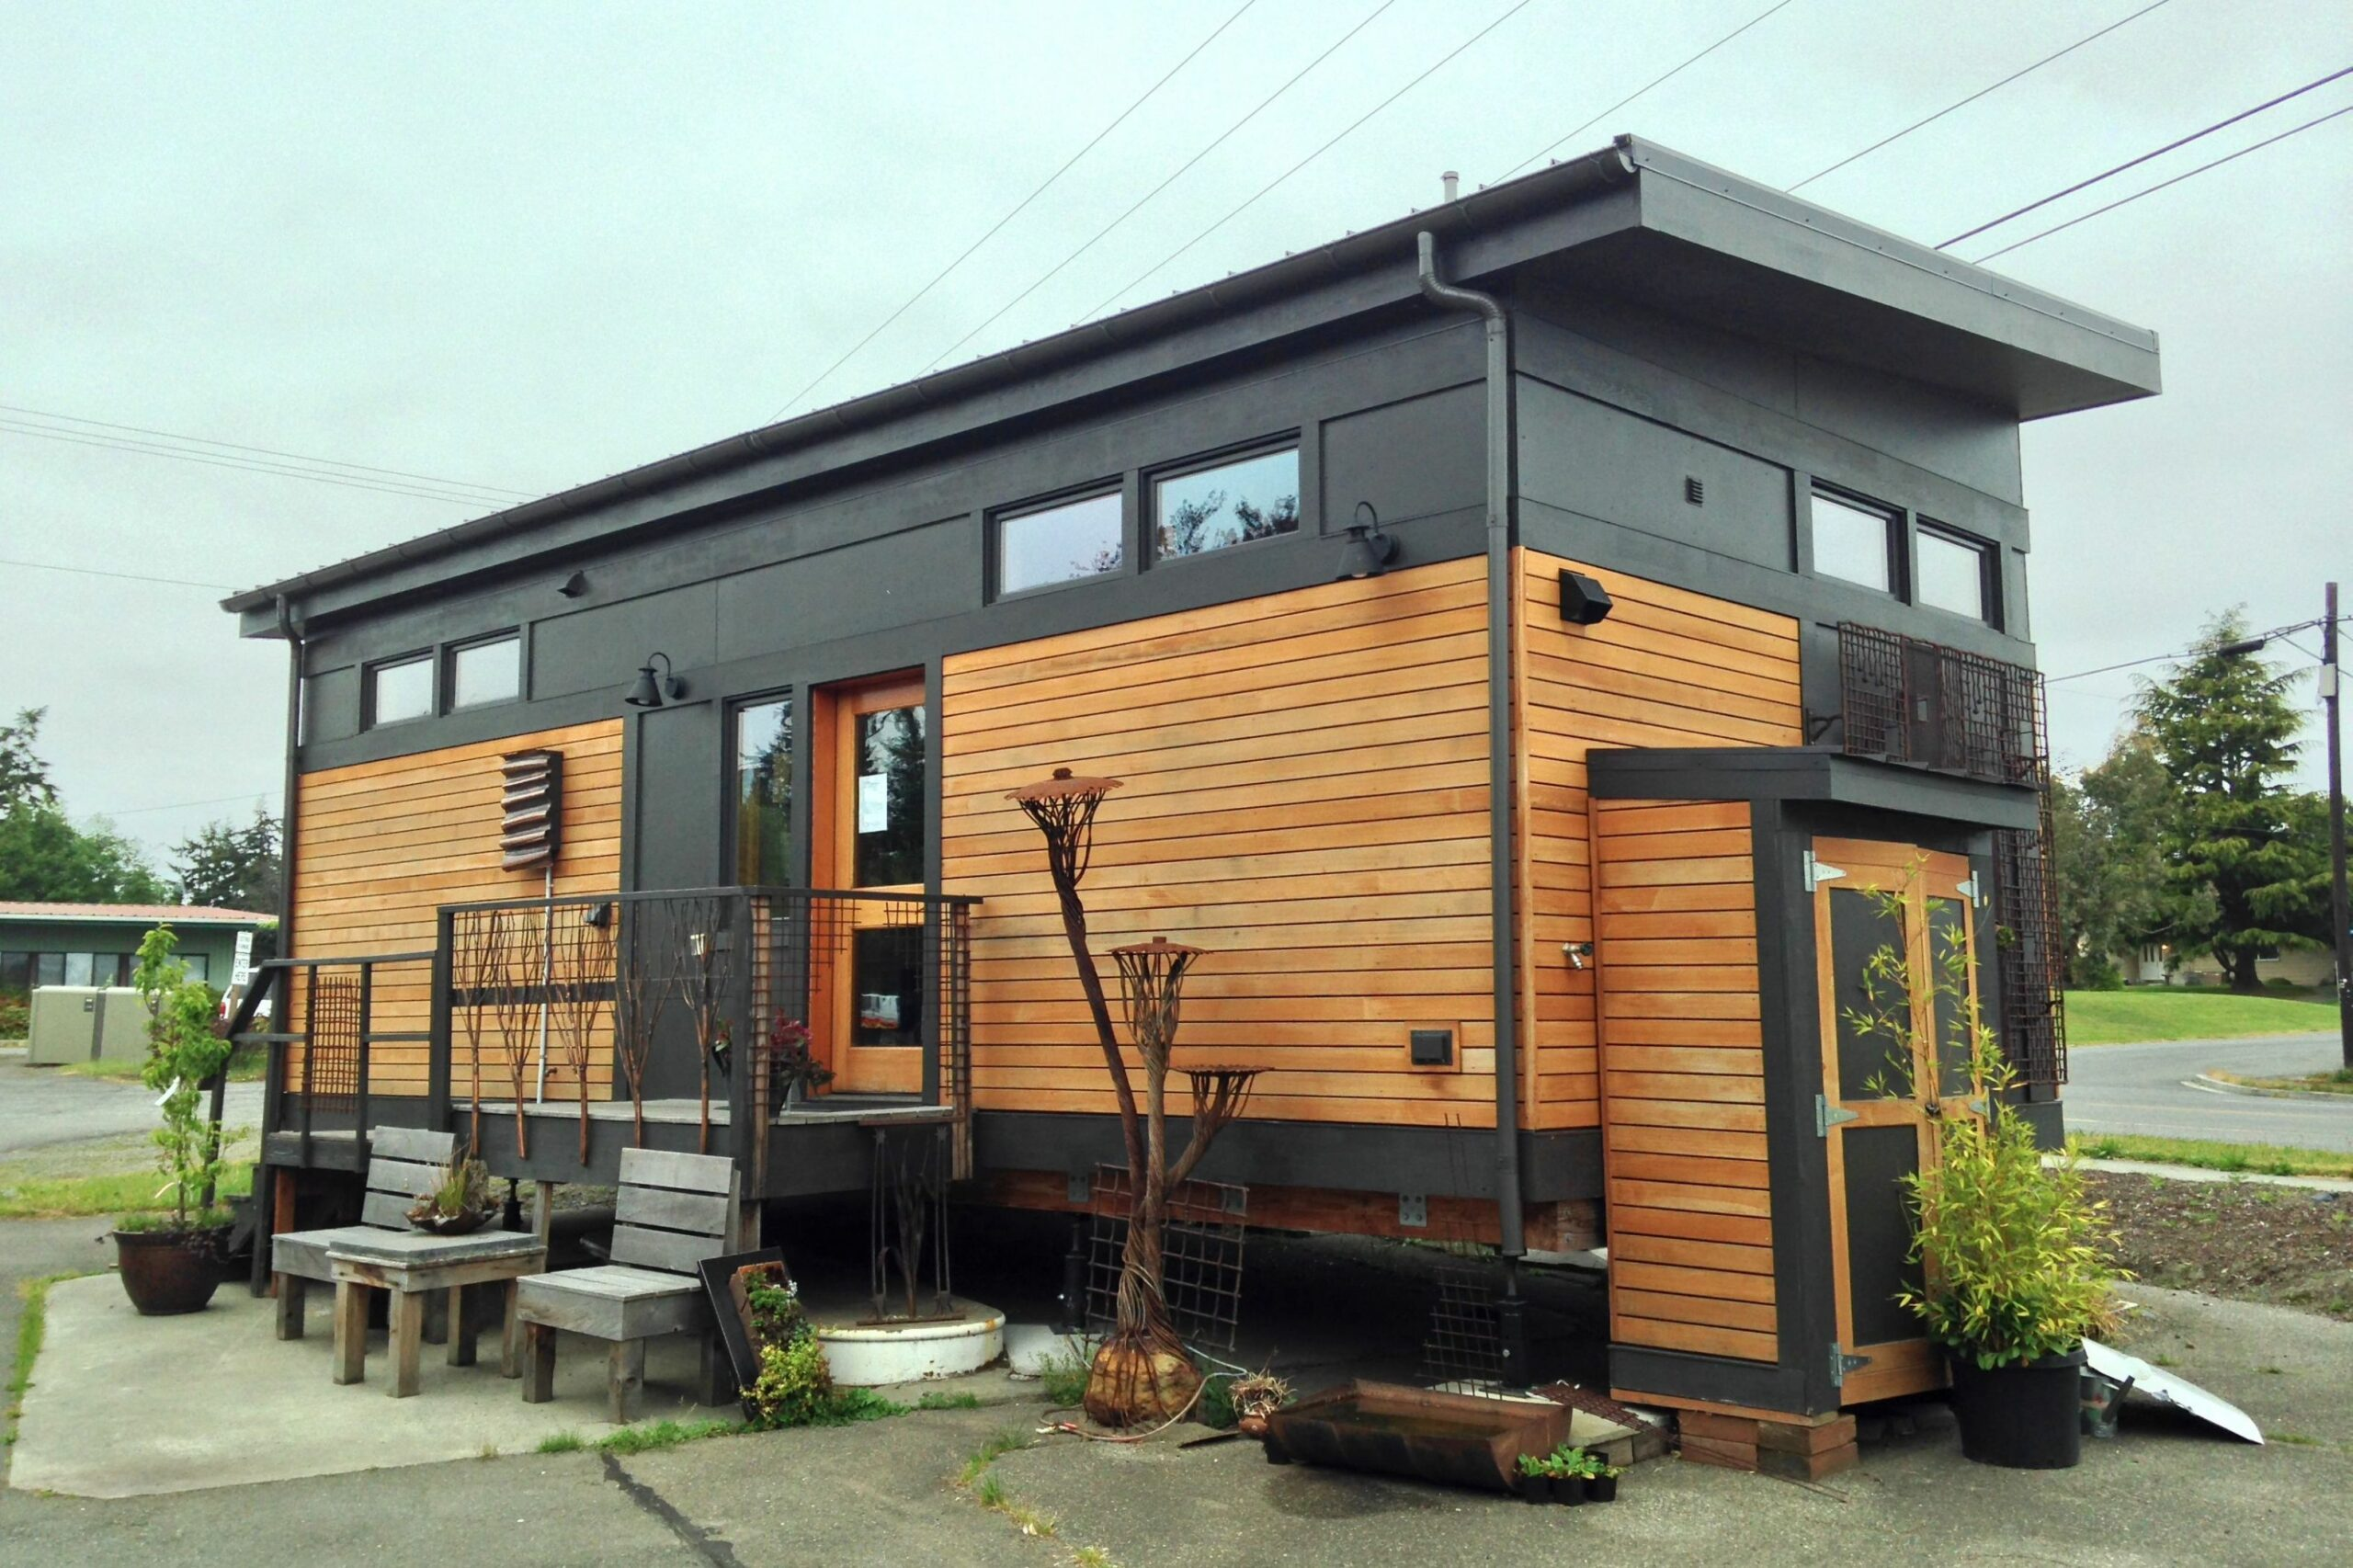 8 Livable Tiny House Communities - tiny house community